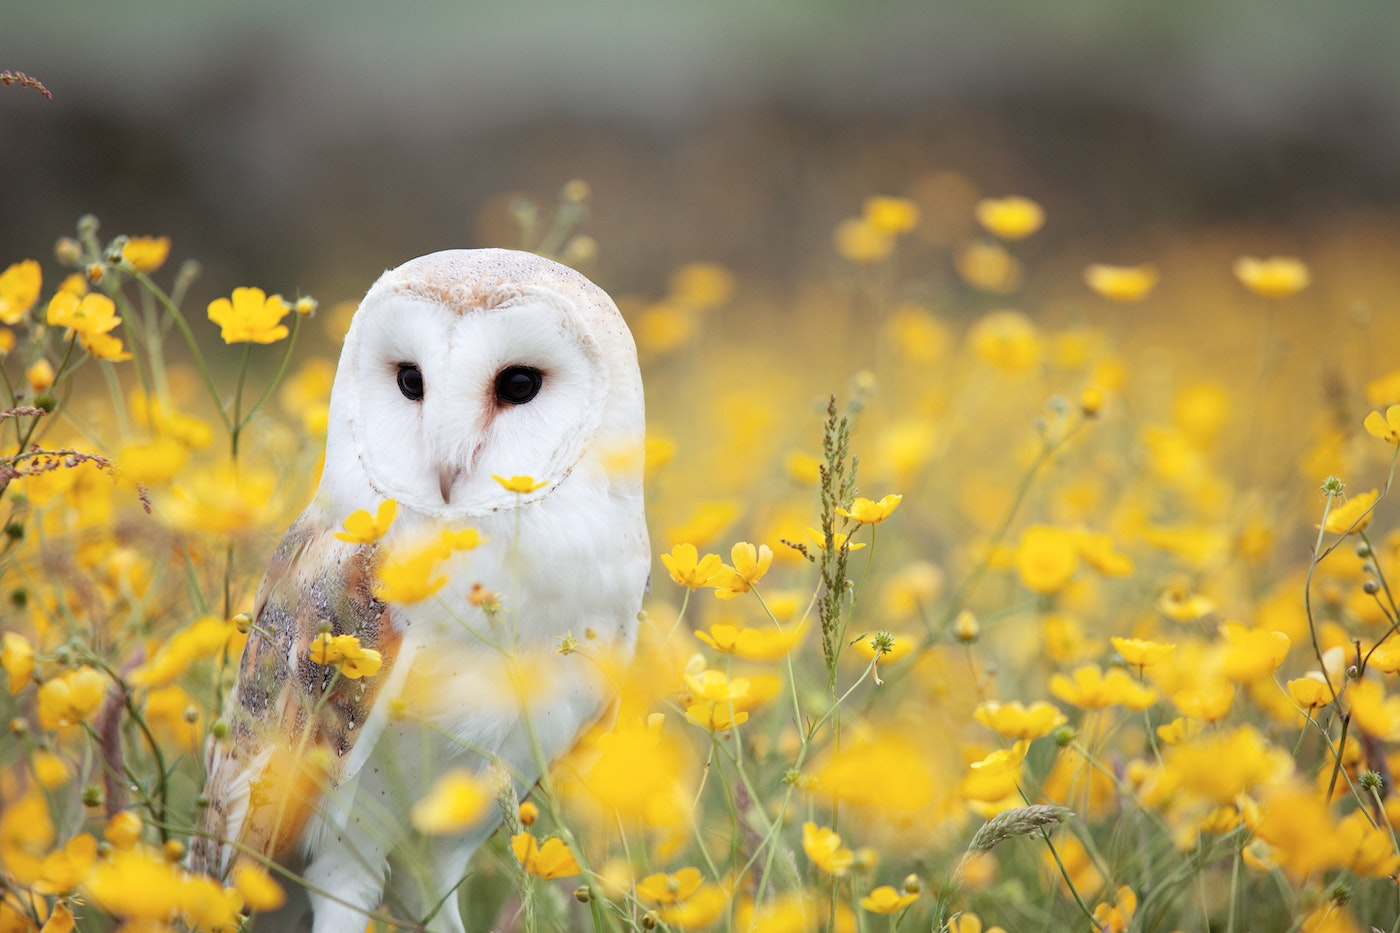 white and brown owl sitting in field